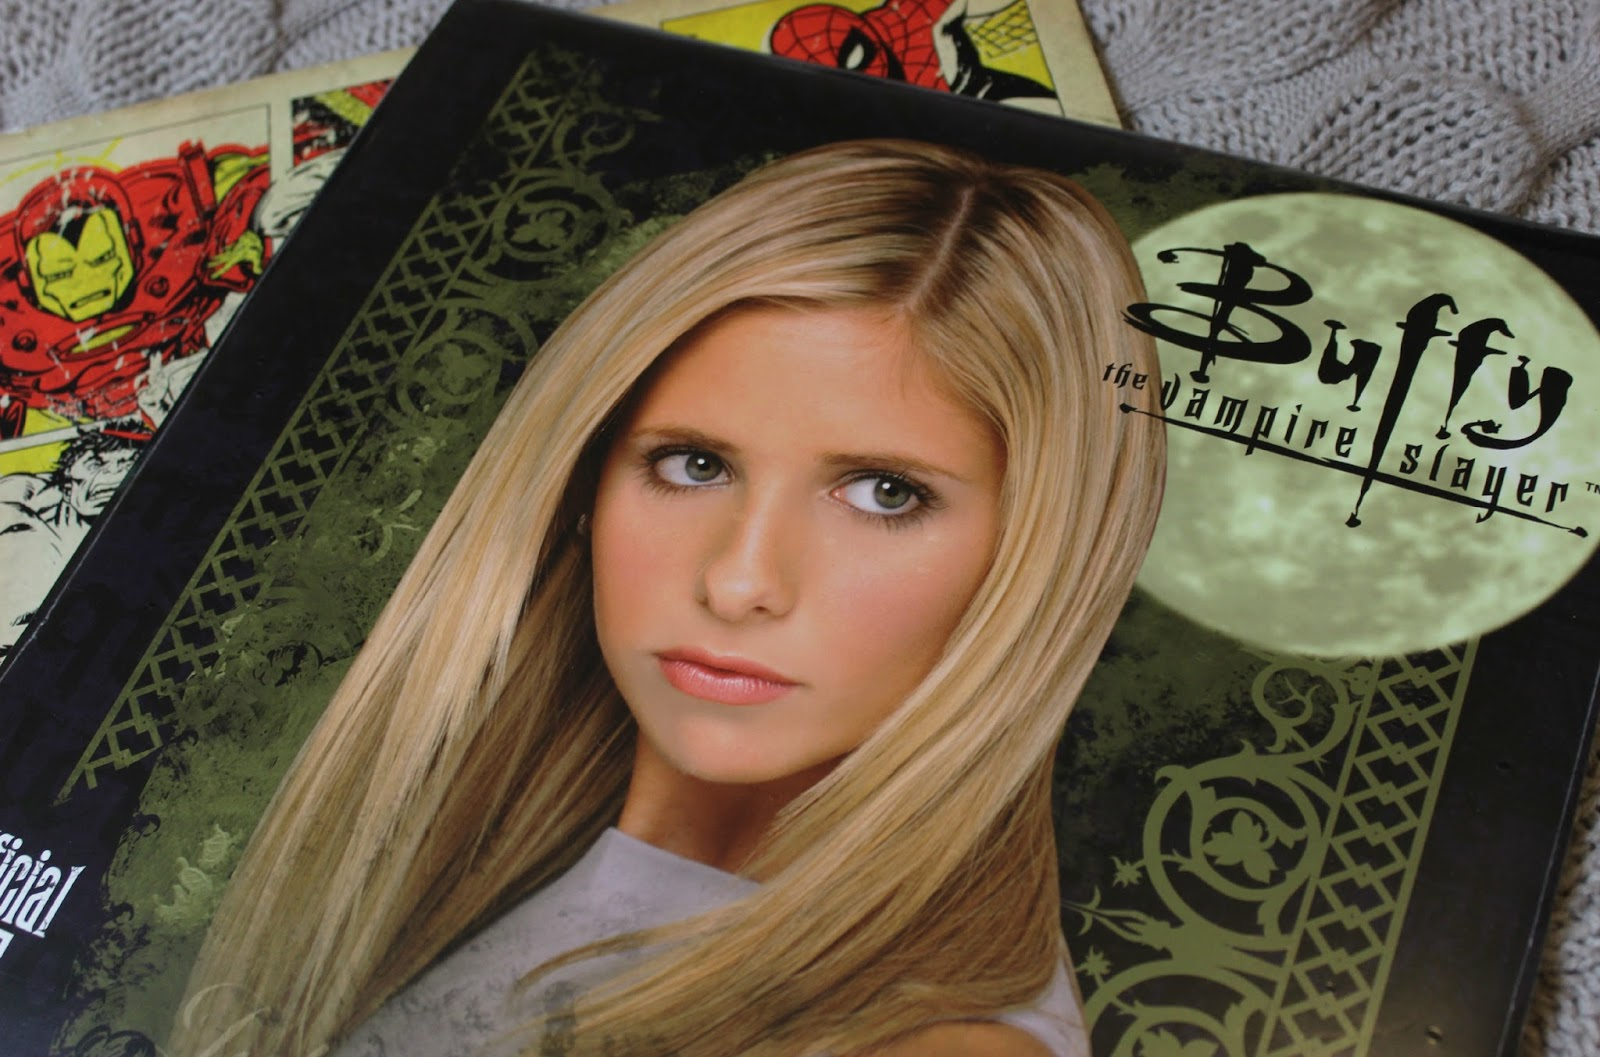 A picture of the Official 2015 Buffy the Vampire Slayer Calendar